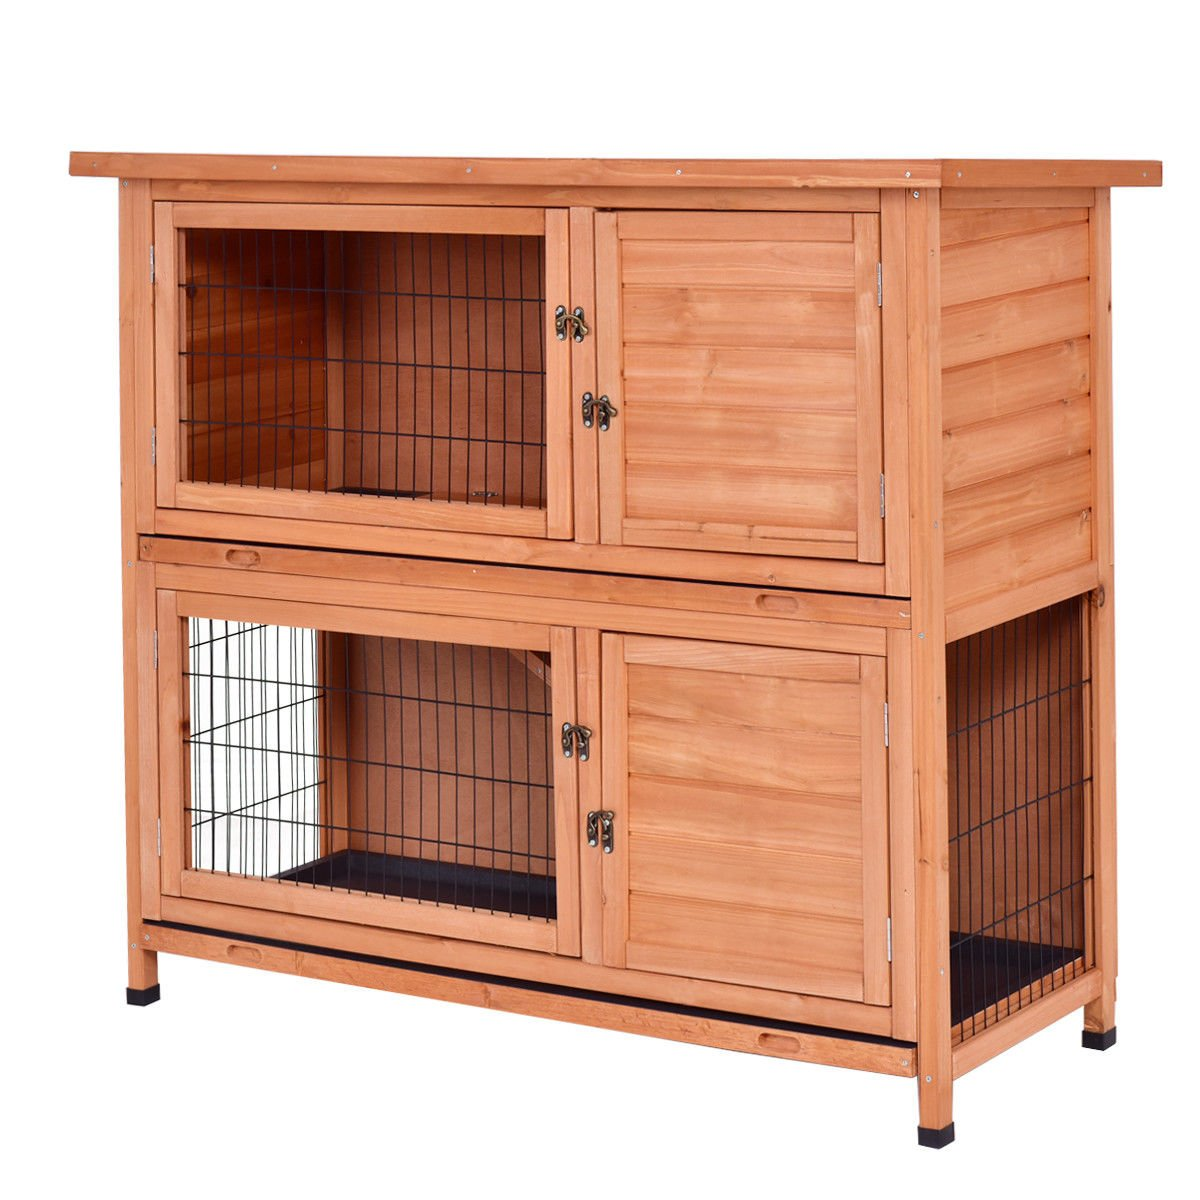 Tangkula Chicken Coop 48'' Rabbit Hutch Wooden Garden Backyard Bunny Hen House Pet Supplies with Ladder by Tangkula